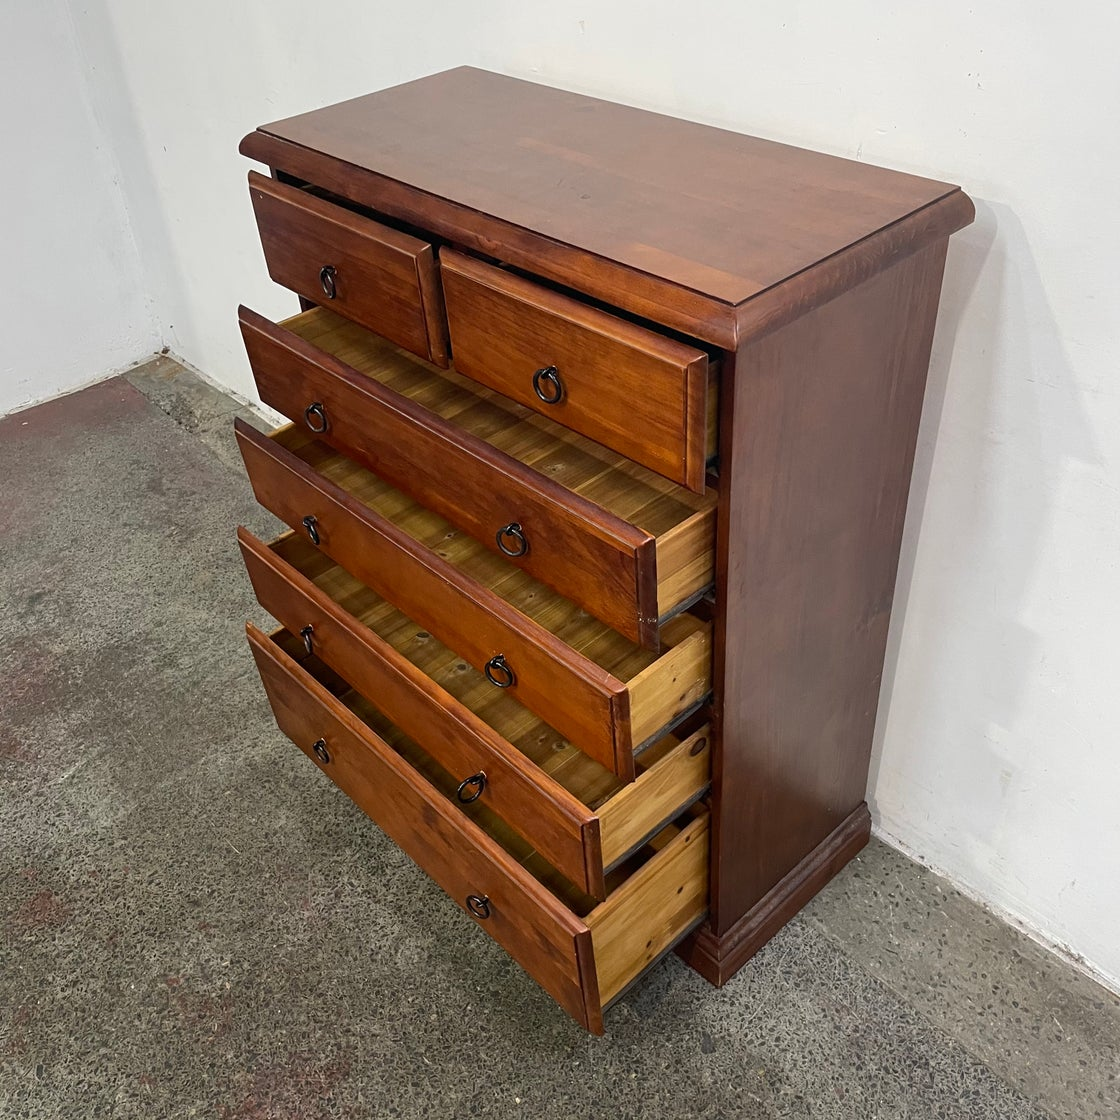 Image of PINE CHEST OF DRAWERS